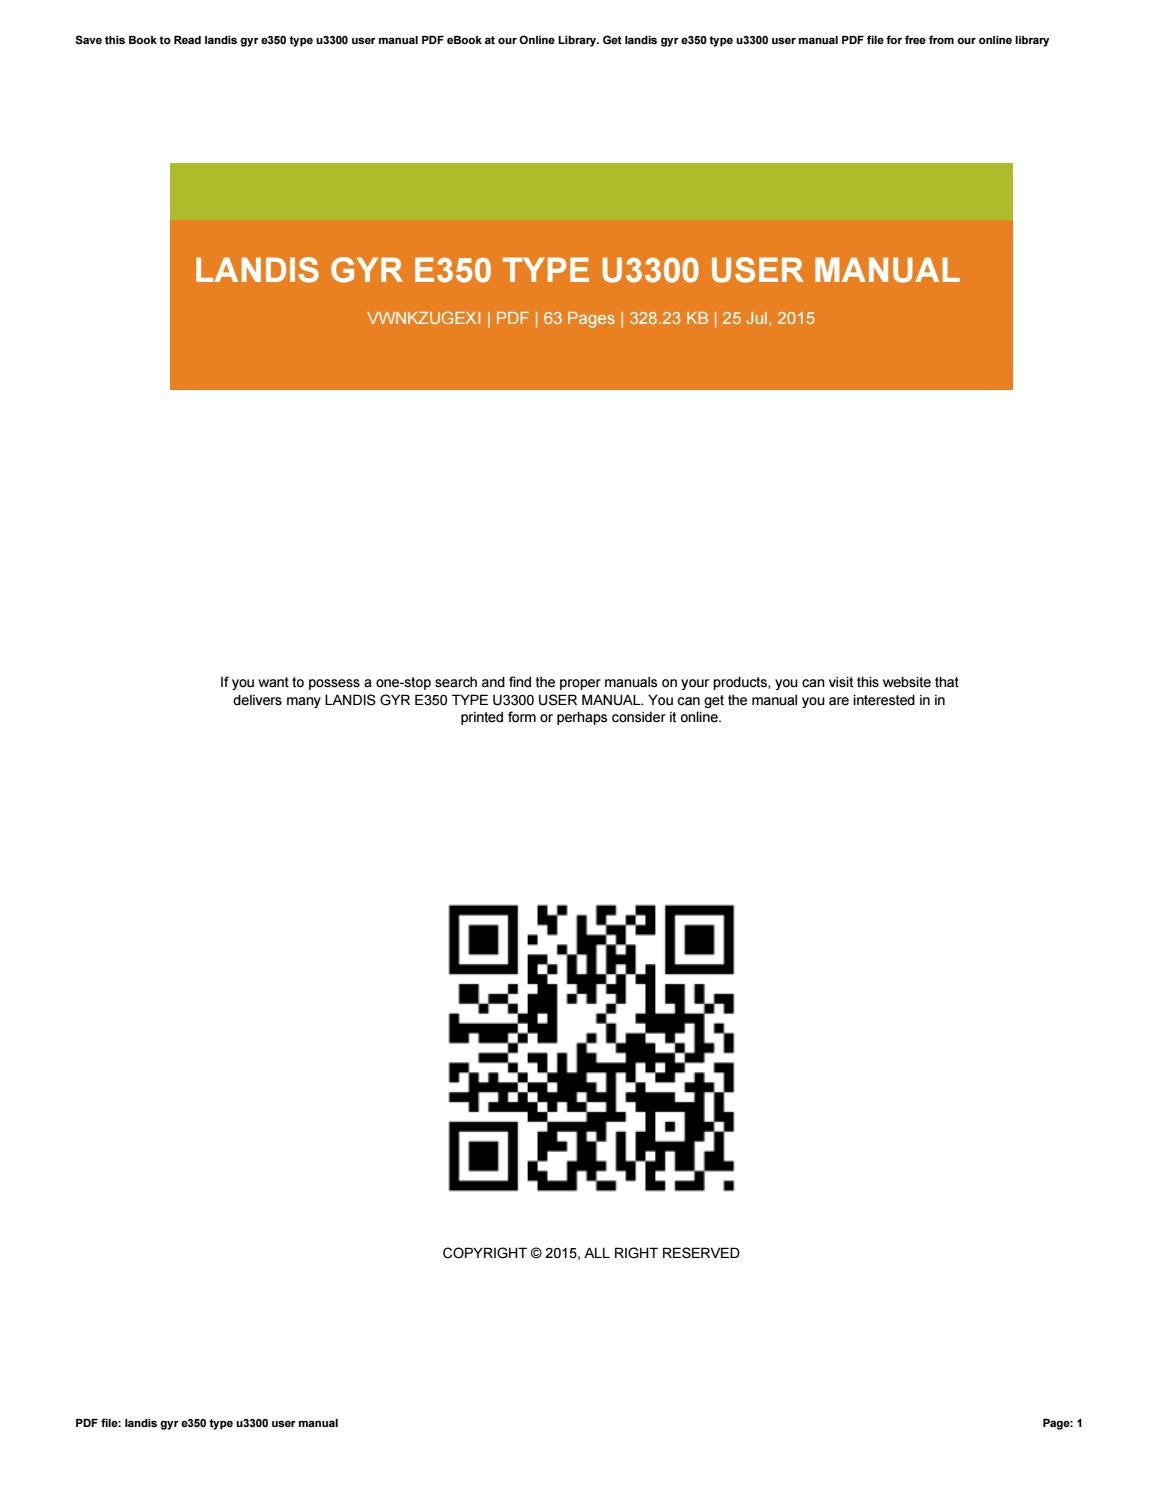 landis gyr e350 type u3300 user manual